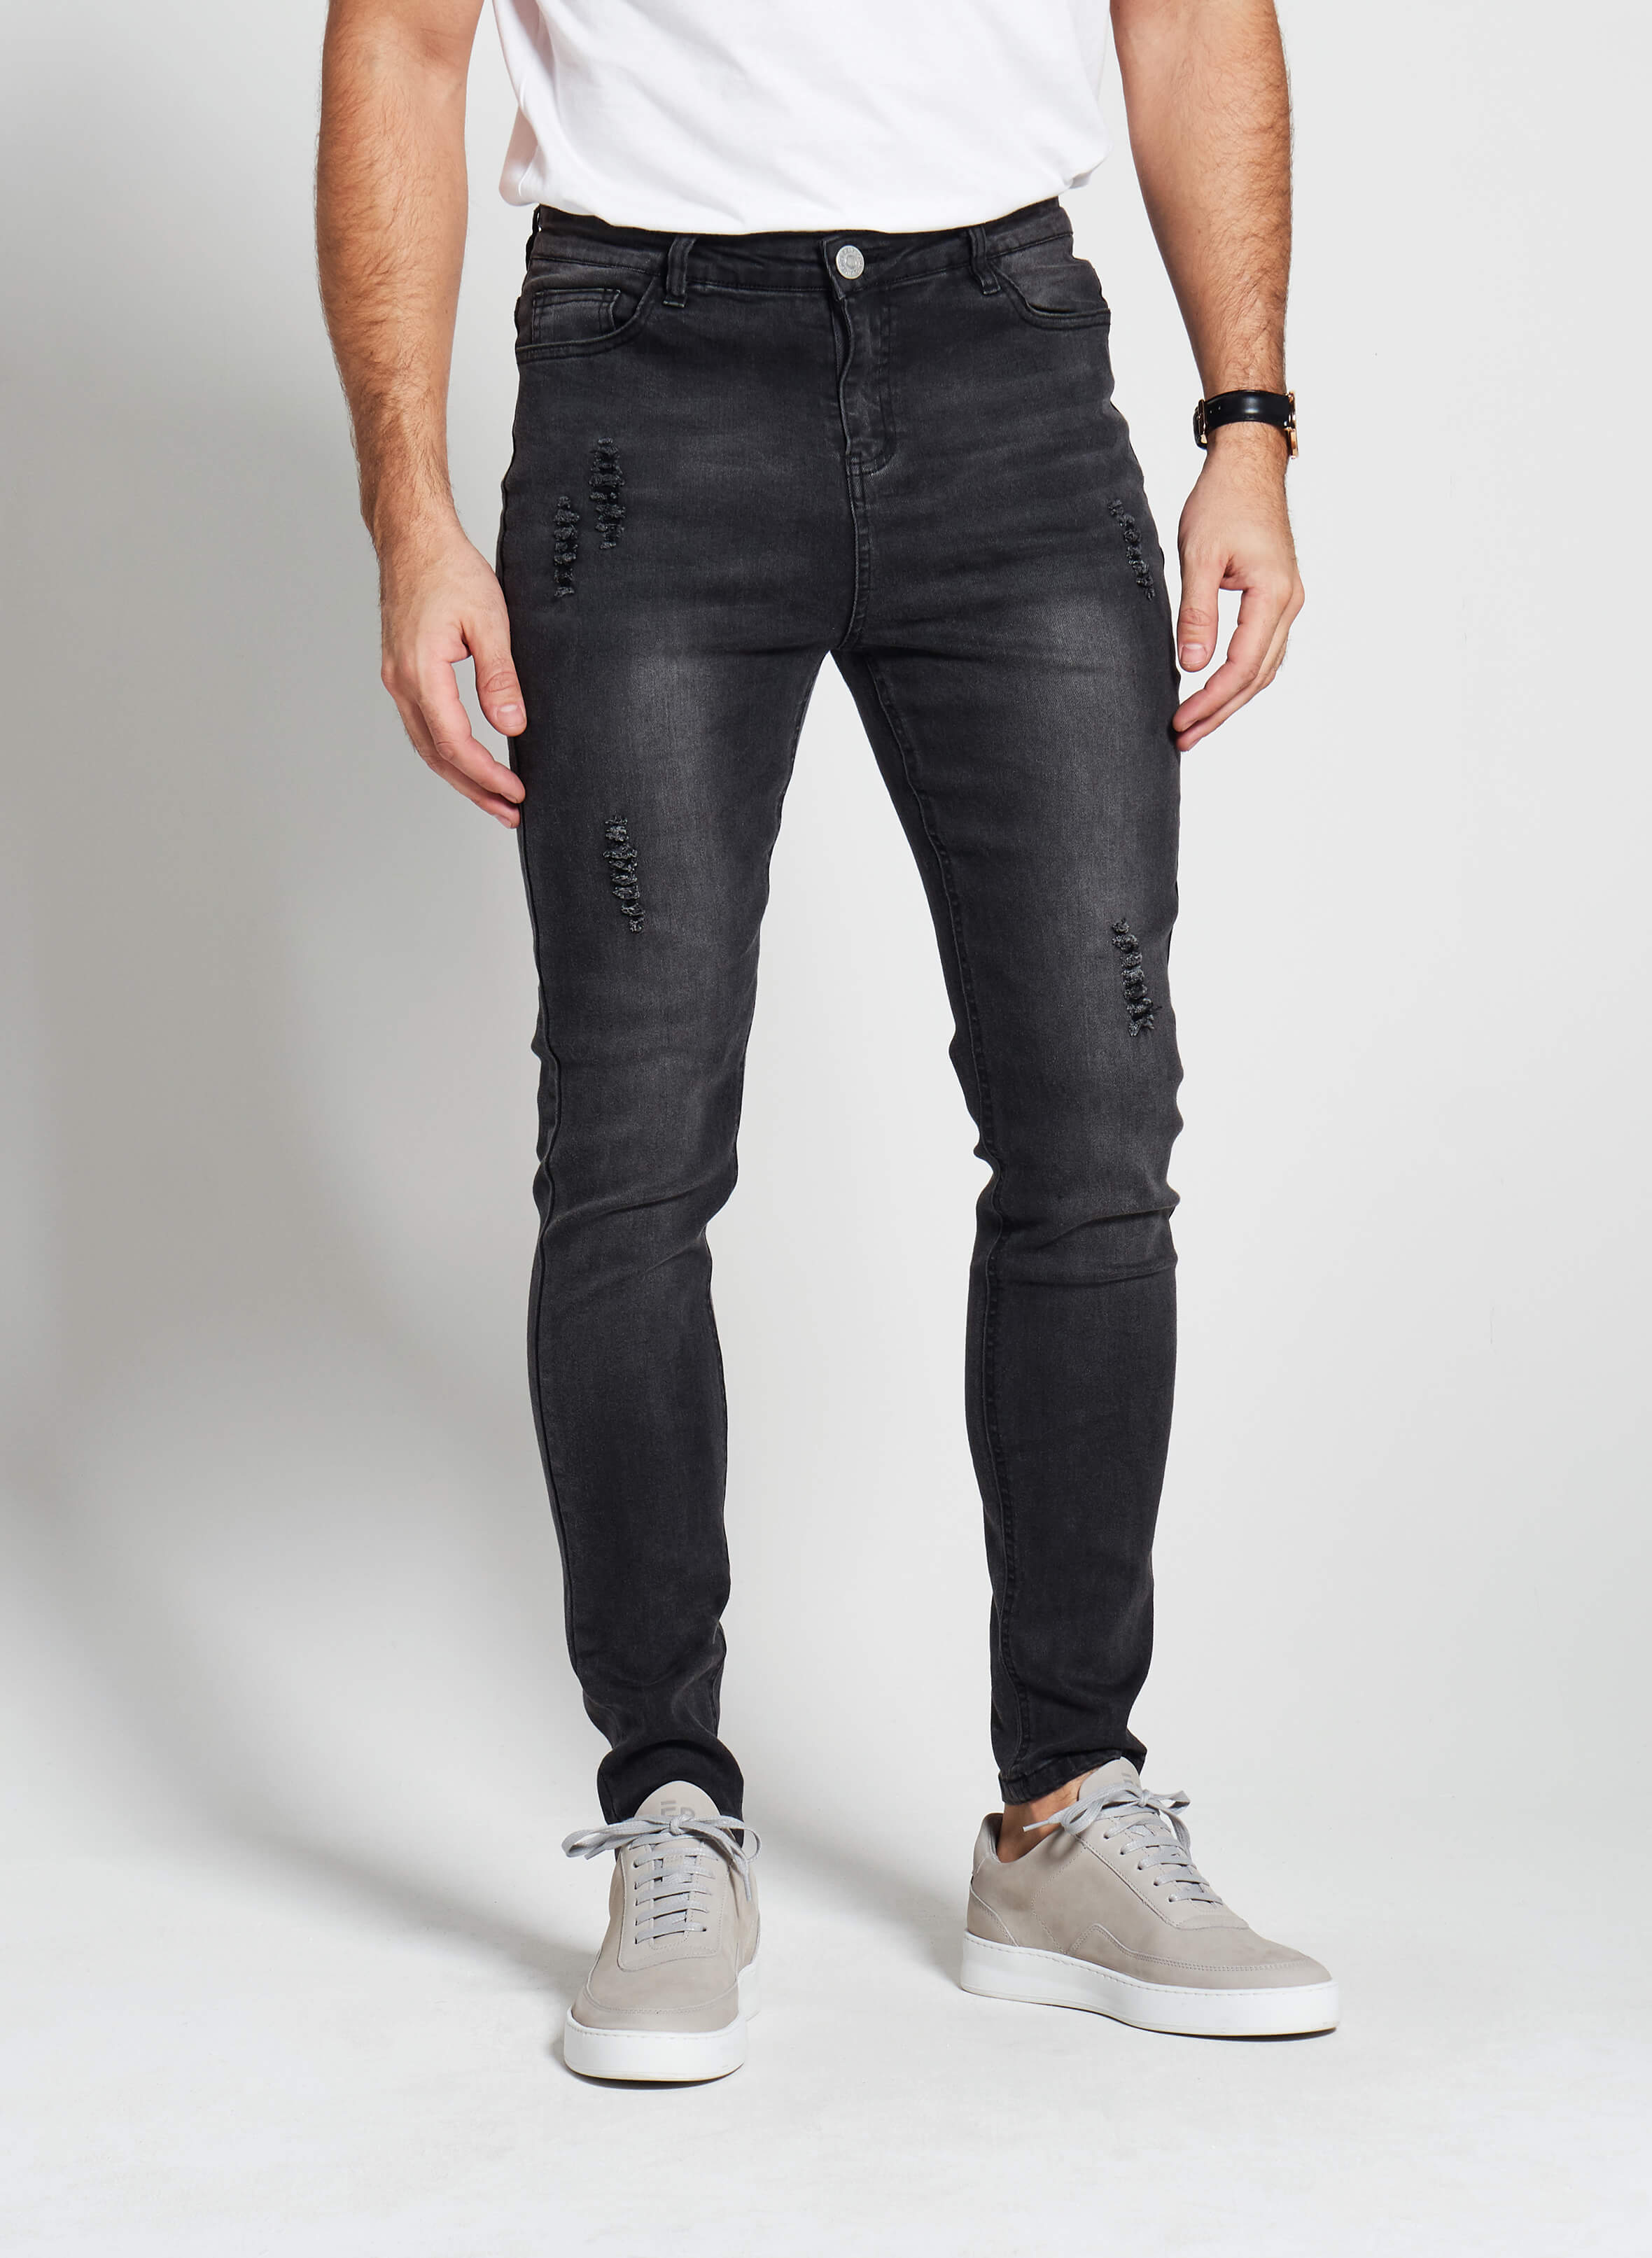 Denim Only® Slim Fit Jeans - Distressed Washed Black